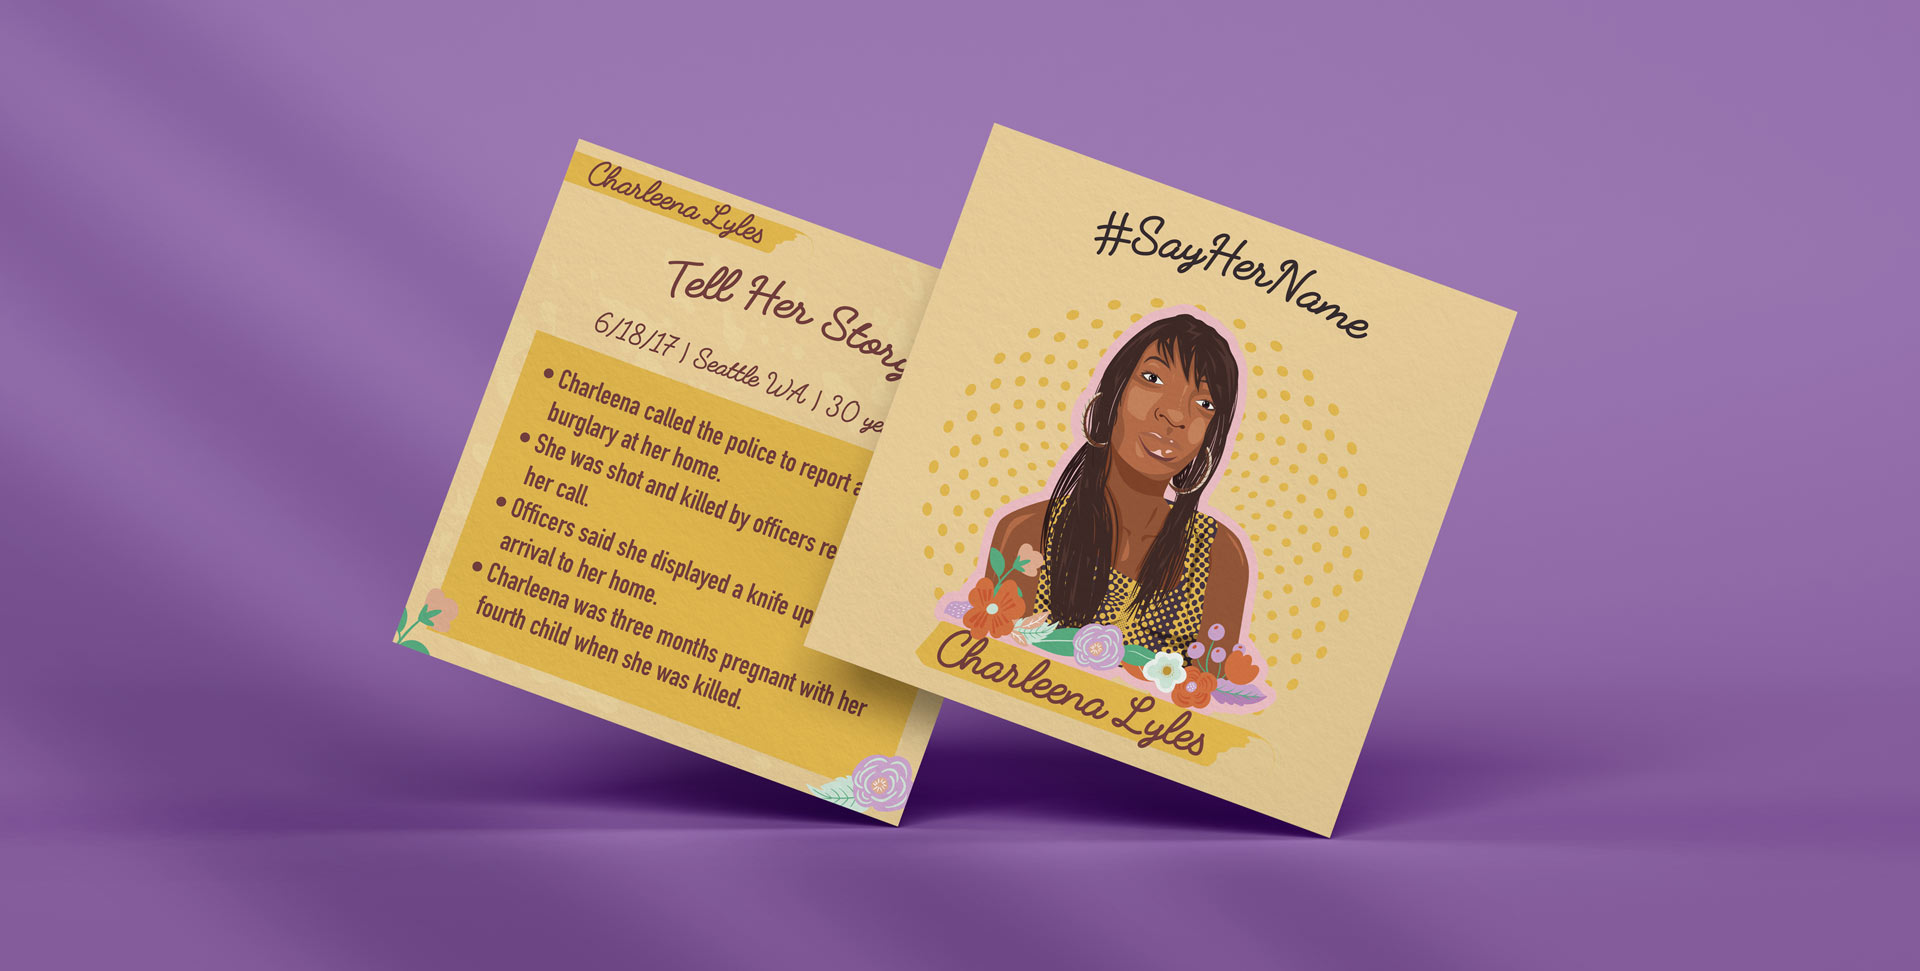 Charleena Lyles mockup illustration with her portrait and on the back her story